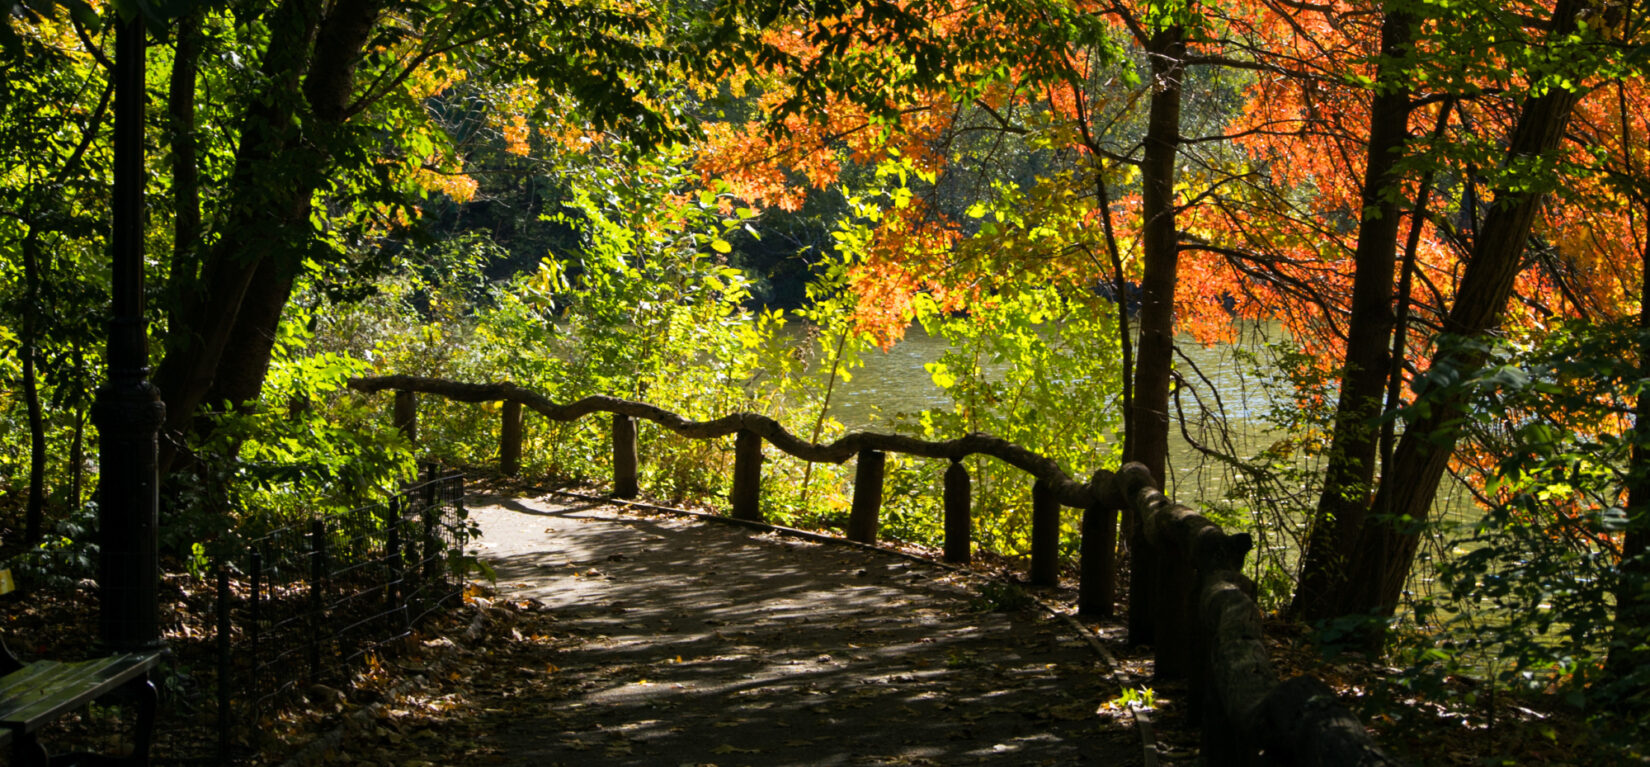 Colorful leaves and autumn light enliven this view of a path through the Ramble